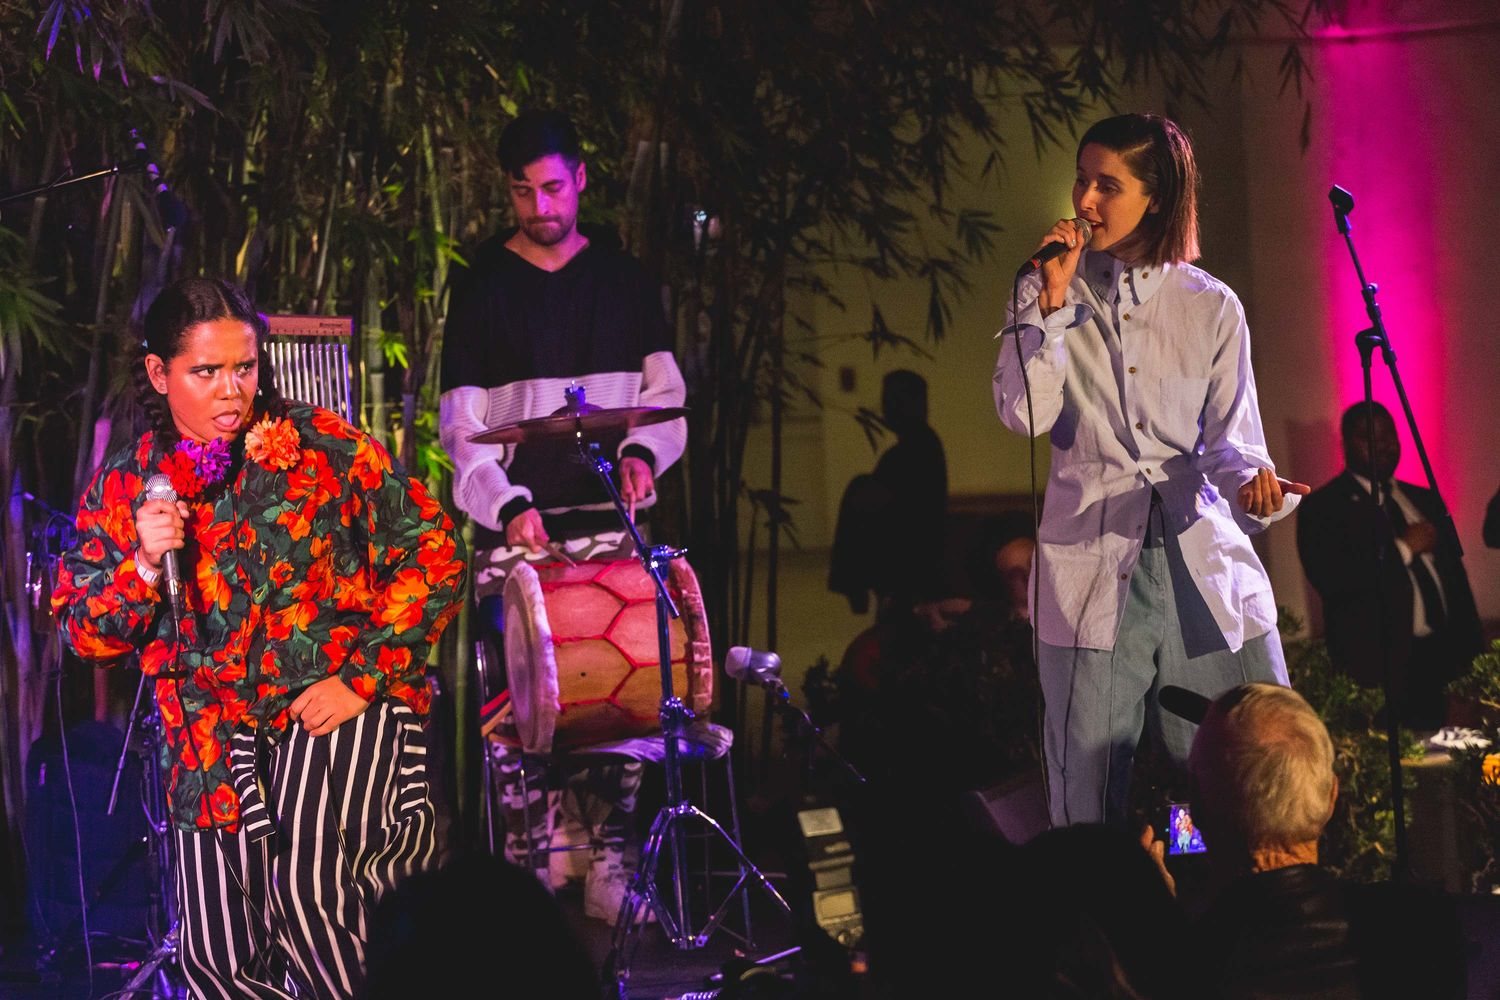 Lido Pimienta (left) performs with Francisca Valenzuela (right) at ¡Pa'rriba!. Hammer Museum, Los Angeles, September 22, 2017